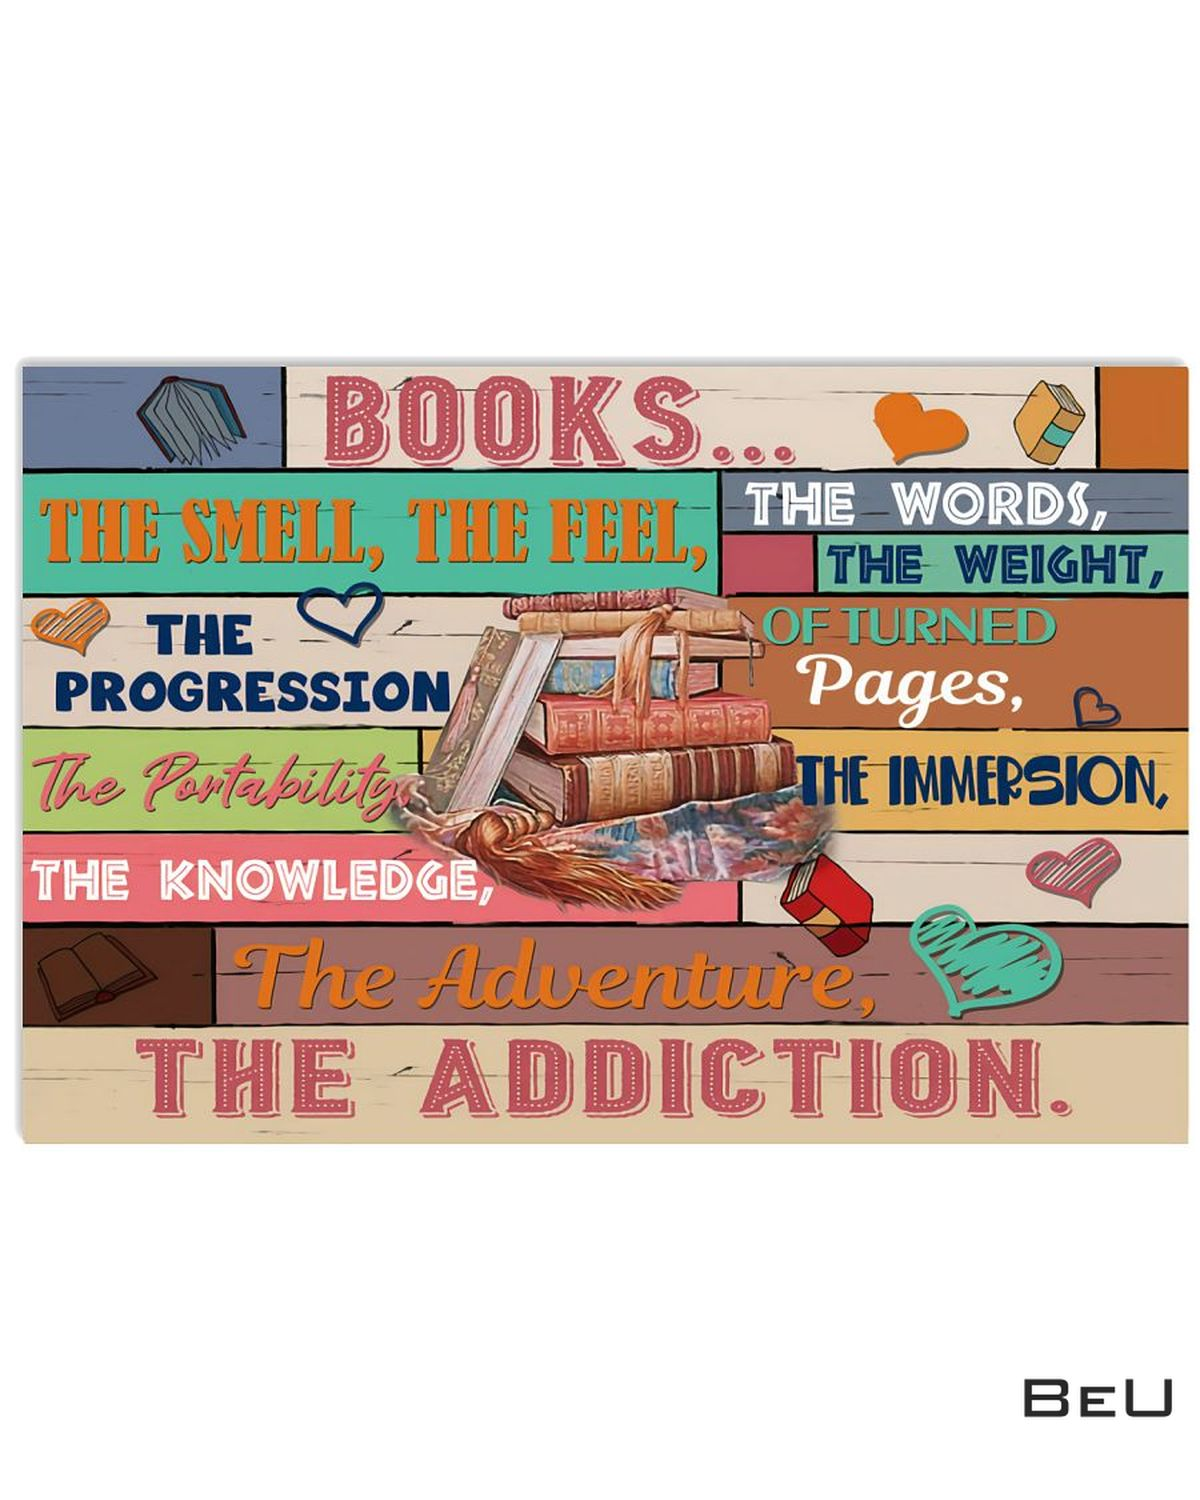 Librarian Books The Smell The Feel The Words The Weight Poster